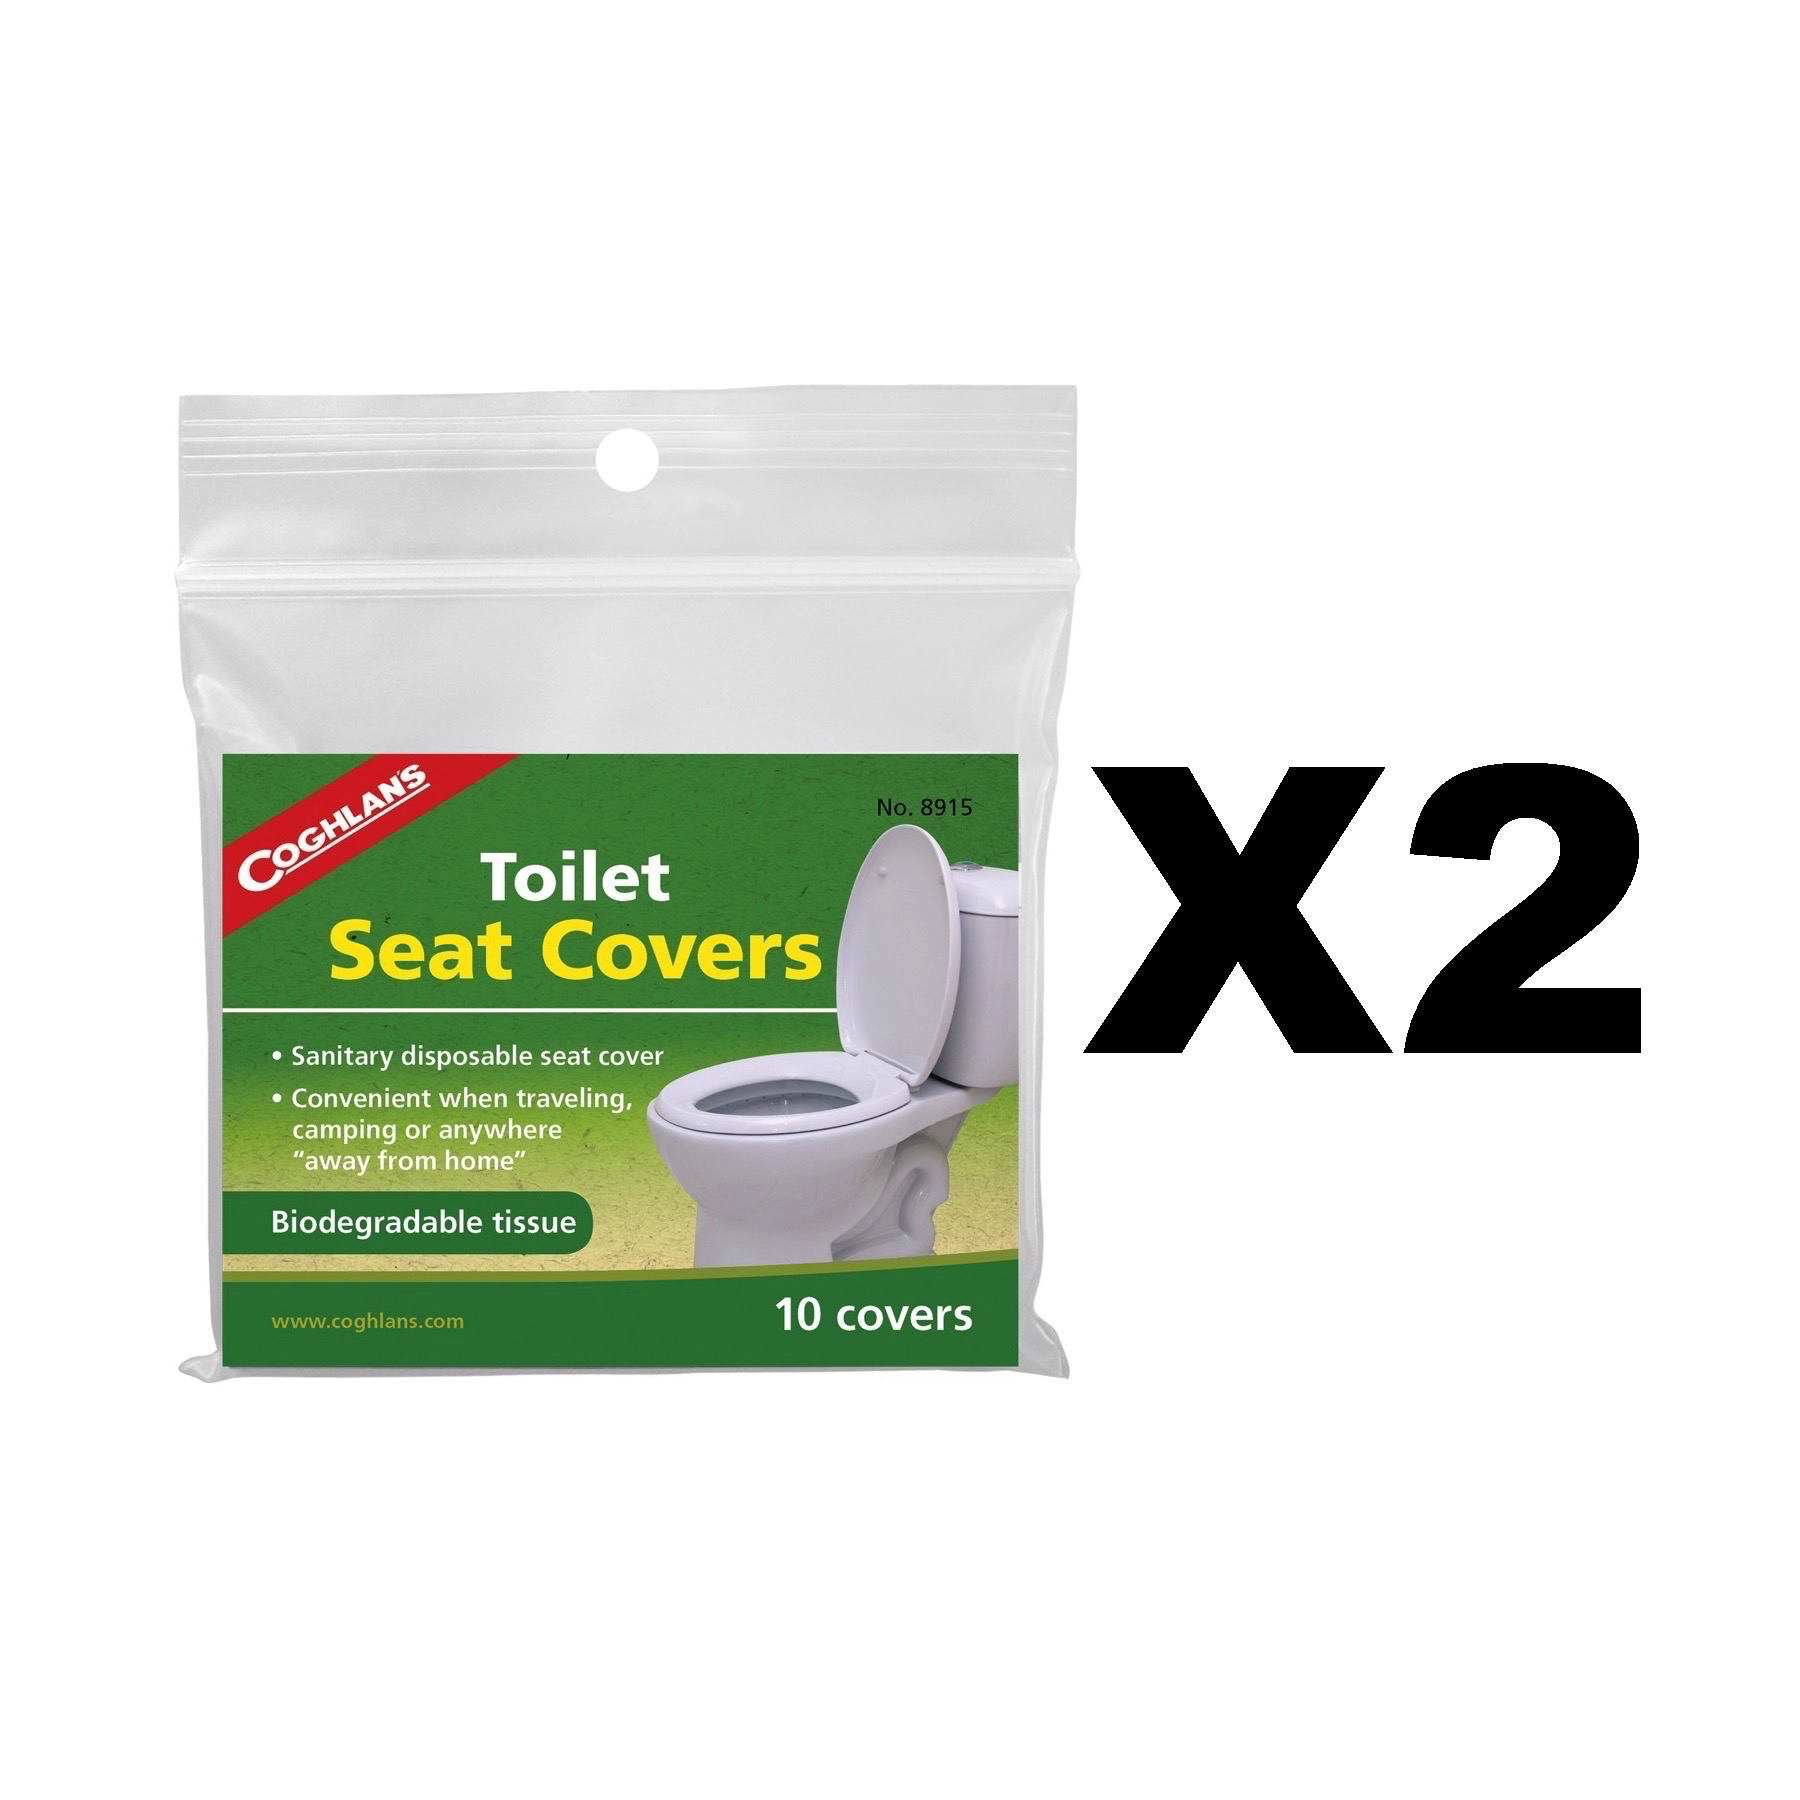 Awesome Details About Coghlans Toilet Seat Covers Biodegradeable Tissues Camping 2 Pack Of 10 Caraccident5 Cool Chair Designs And Ideas Caraccident5Info